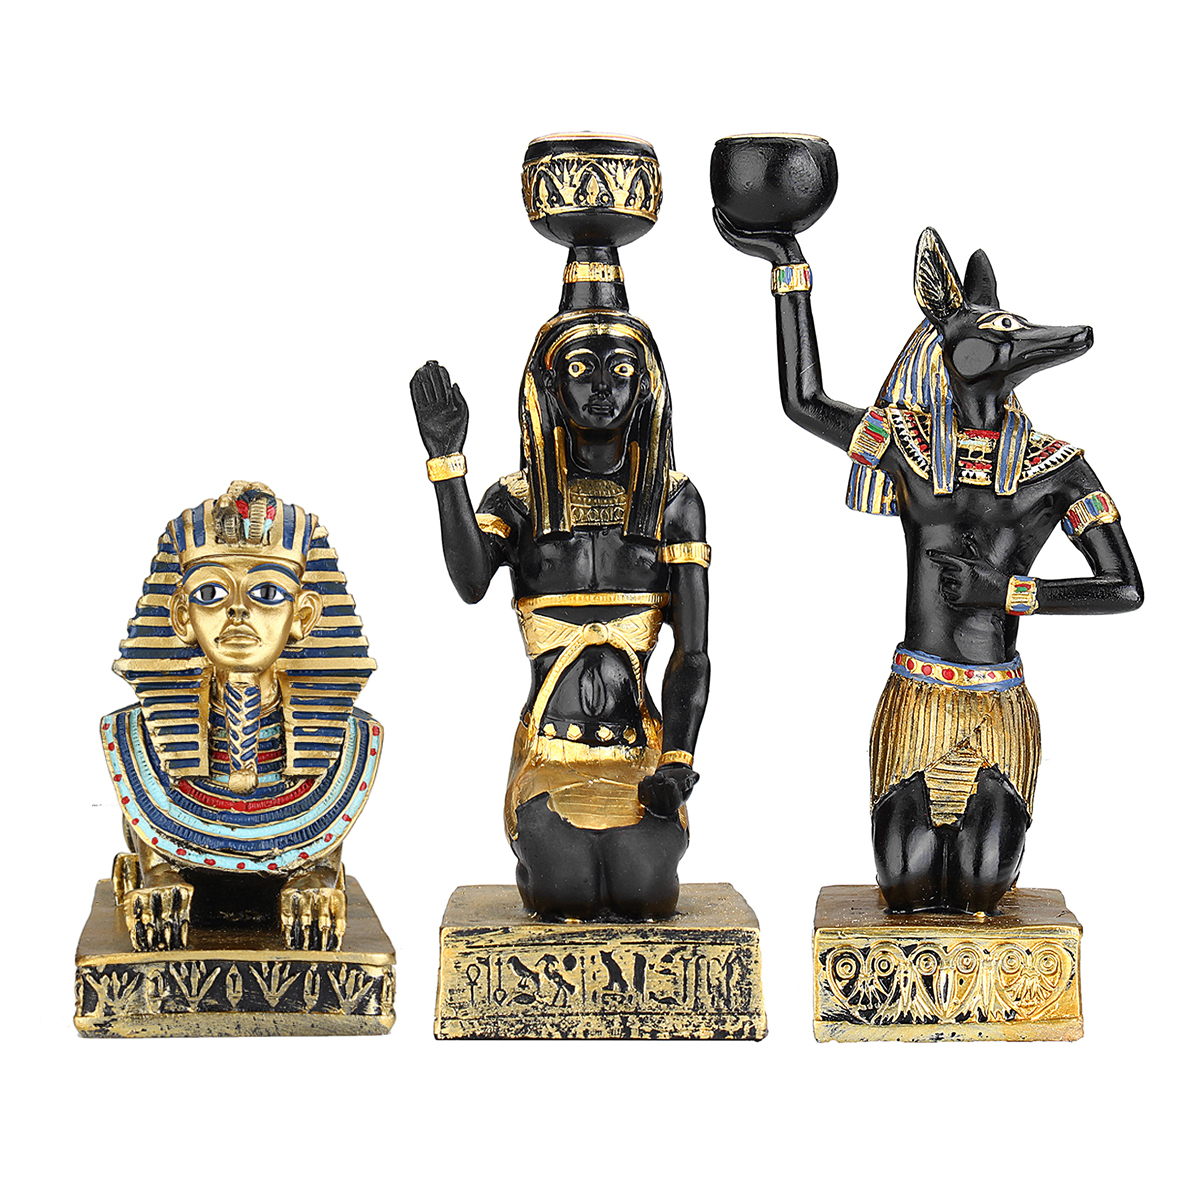 Resin Figurines Candleholder Retro Ancient Egyptian Goddess Sphinx Anubis Shape Candlestick Crafts Home Decorative Ornaments